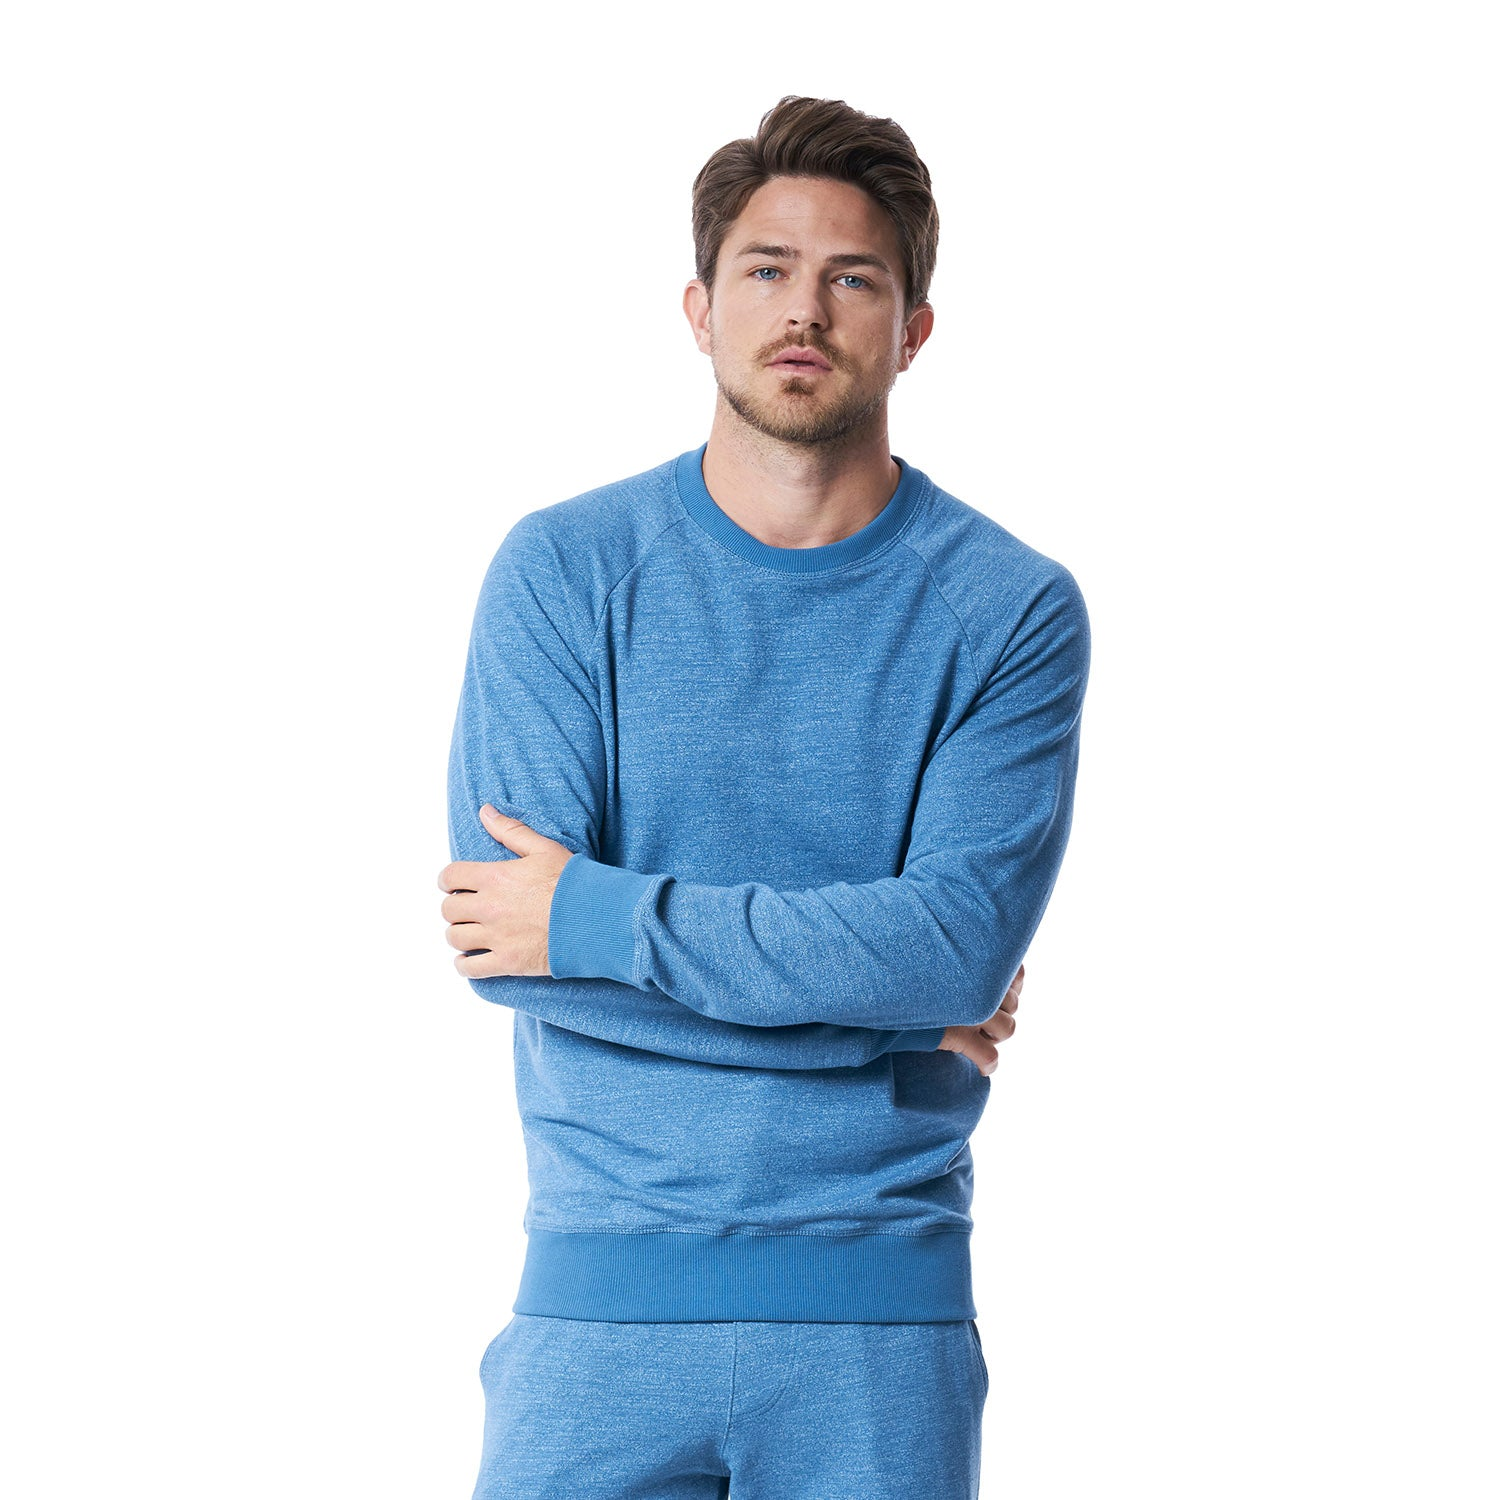 River Raglan Crewneck Sweatshirt in Heather Blue Mirage - Mitchell Evan